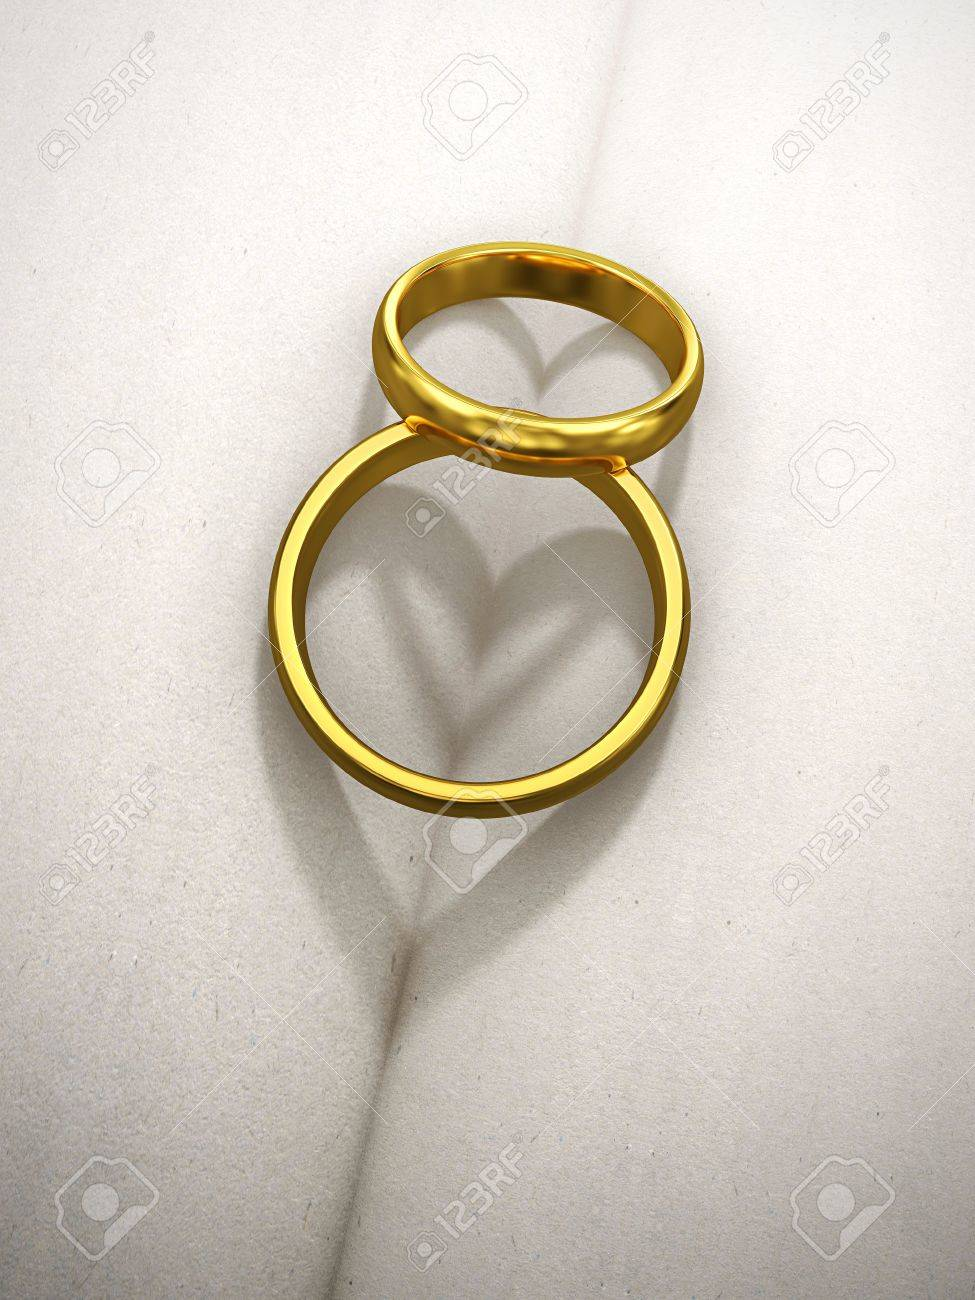 Two Golden Wedding Rings With Heart Shaped Shadow Stock Photo